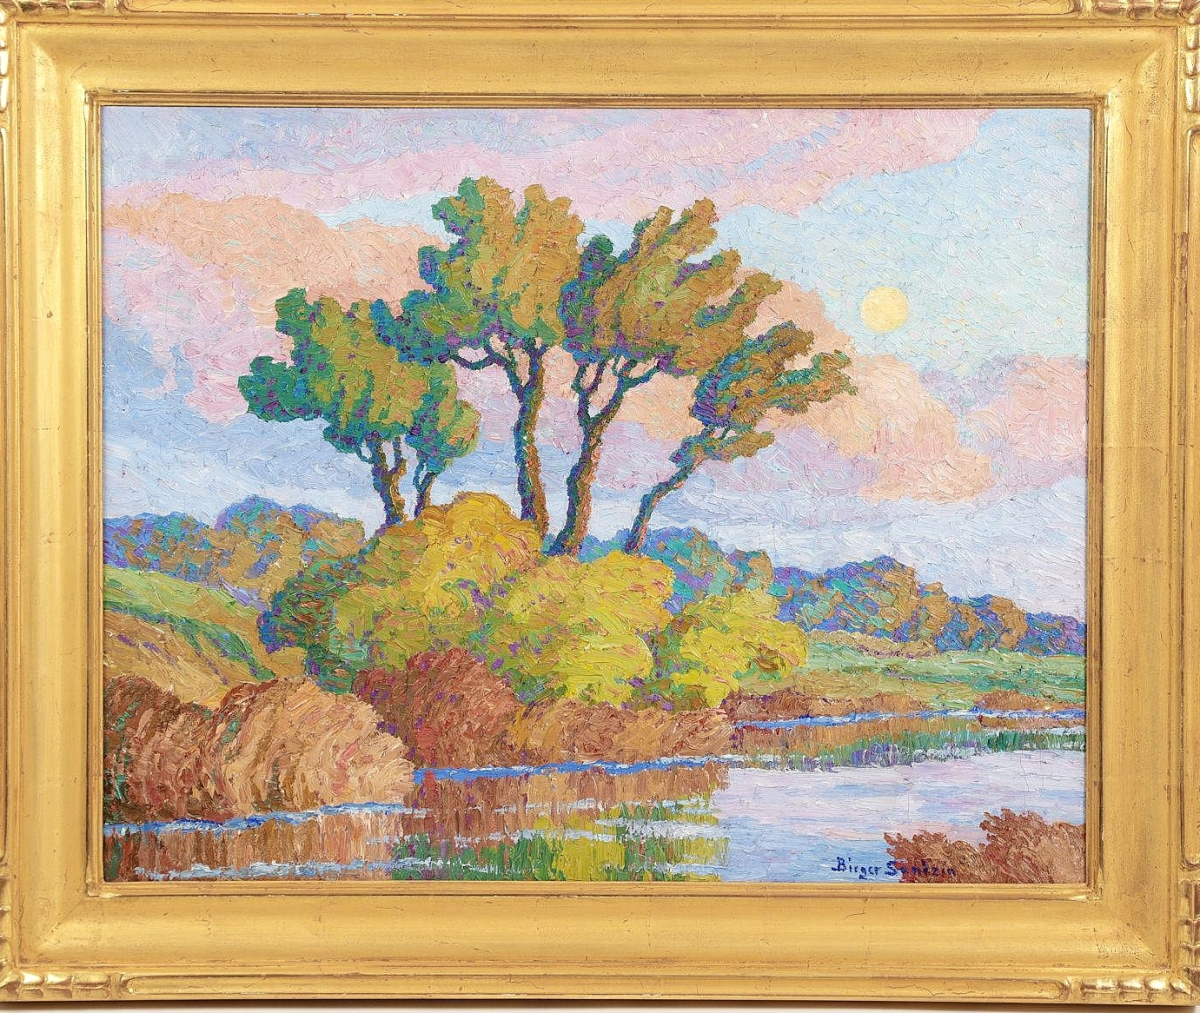 """""""Twilight"""" by Birger Sandzén sold for $30,000 to the same buyer as """"Snow and Mountain,"""" for just two dollars less. It measured 22 by 28 inches not including the frame ($25/35,000)."""